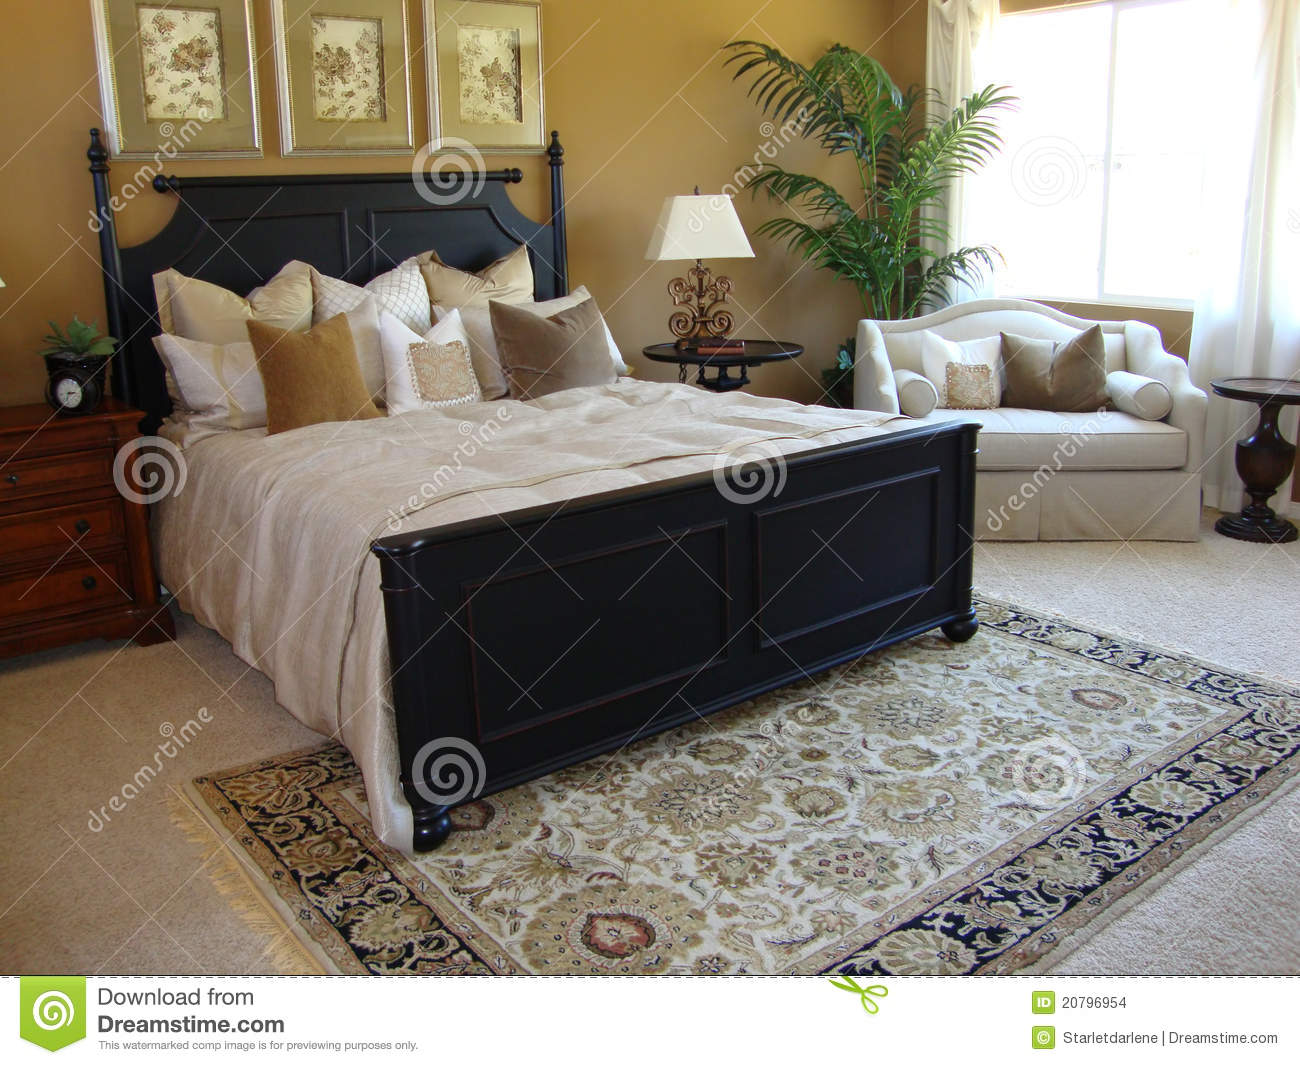 Beautiful Master Bedroom Suite Stock Photo Image 20796954